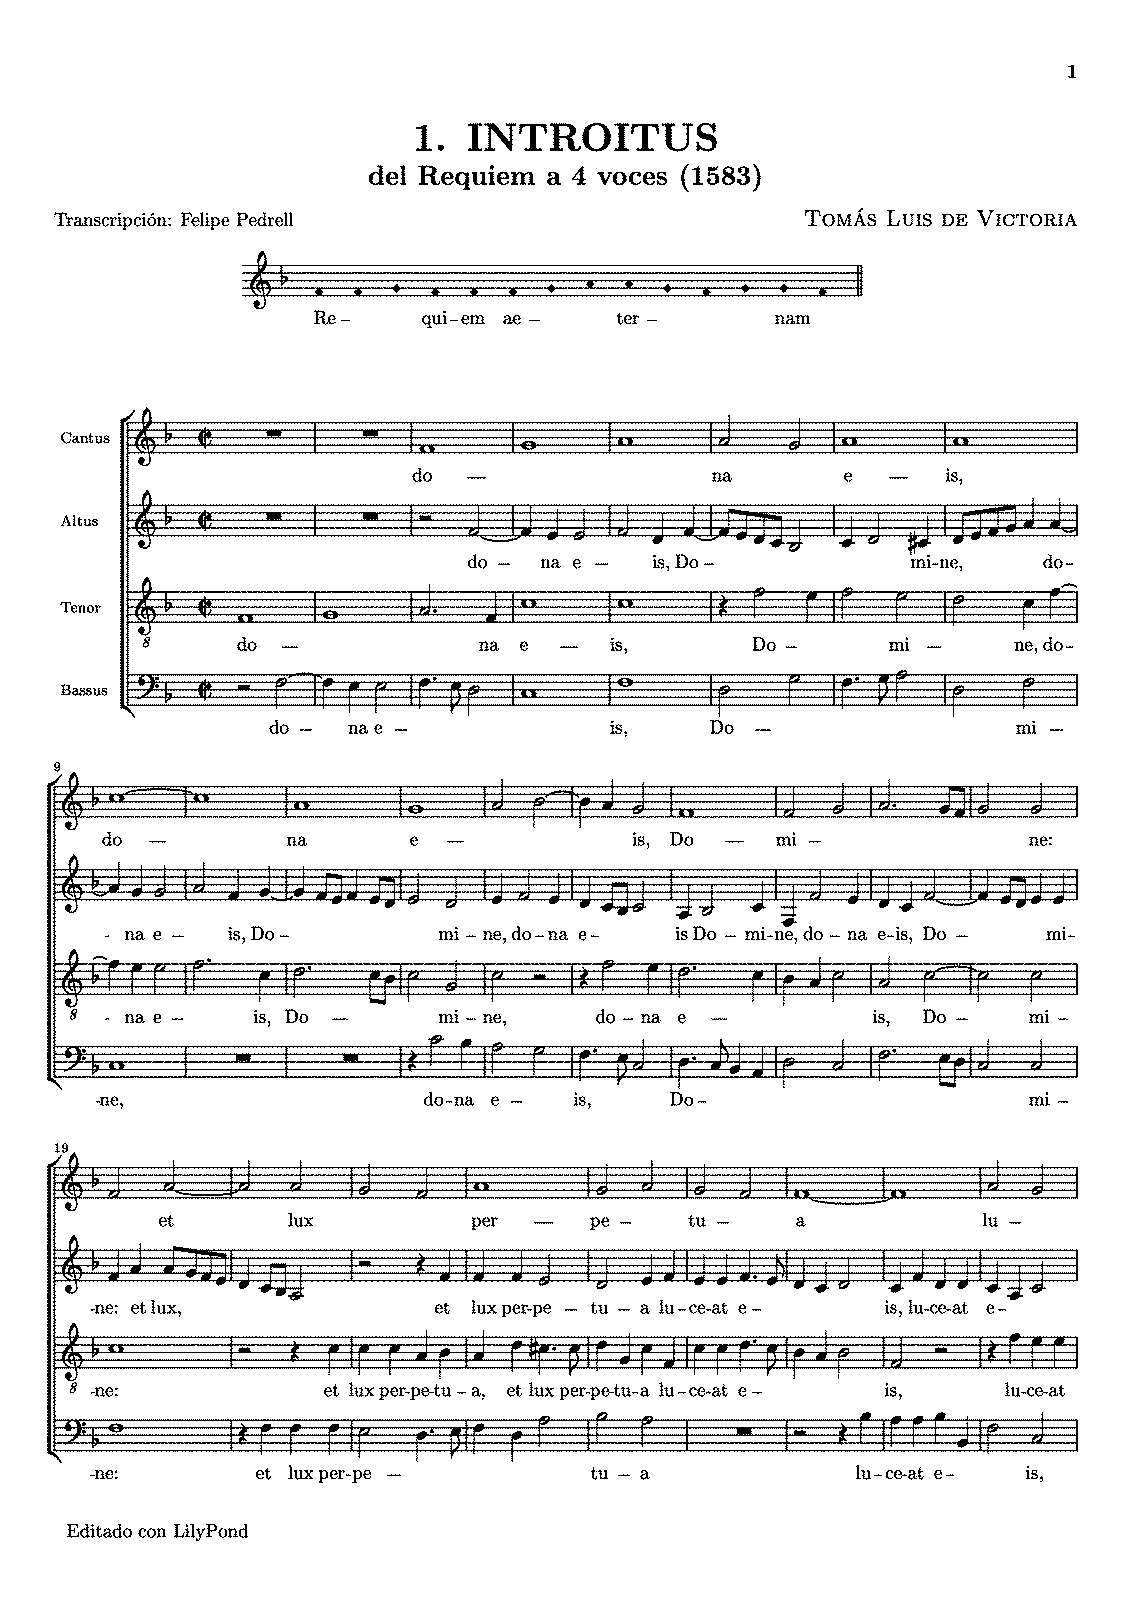 Victoria Requiem a 4 voces-01-Introitus.pdf